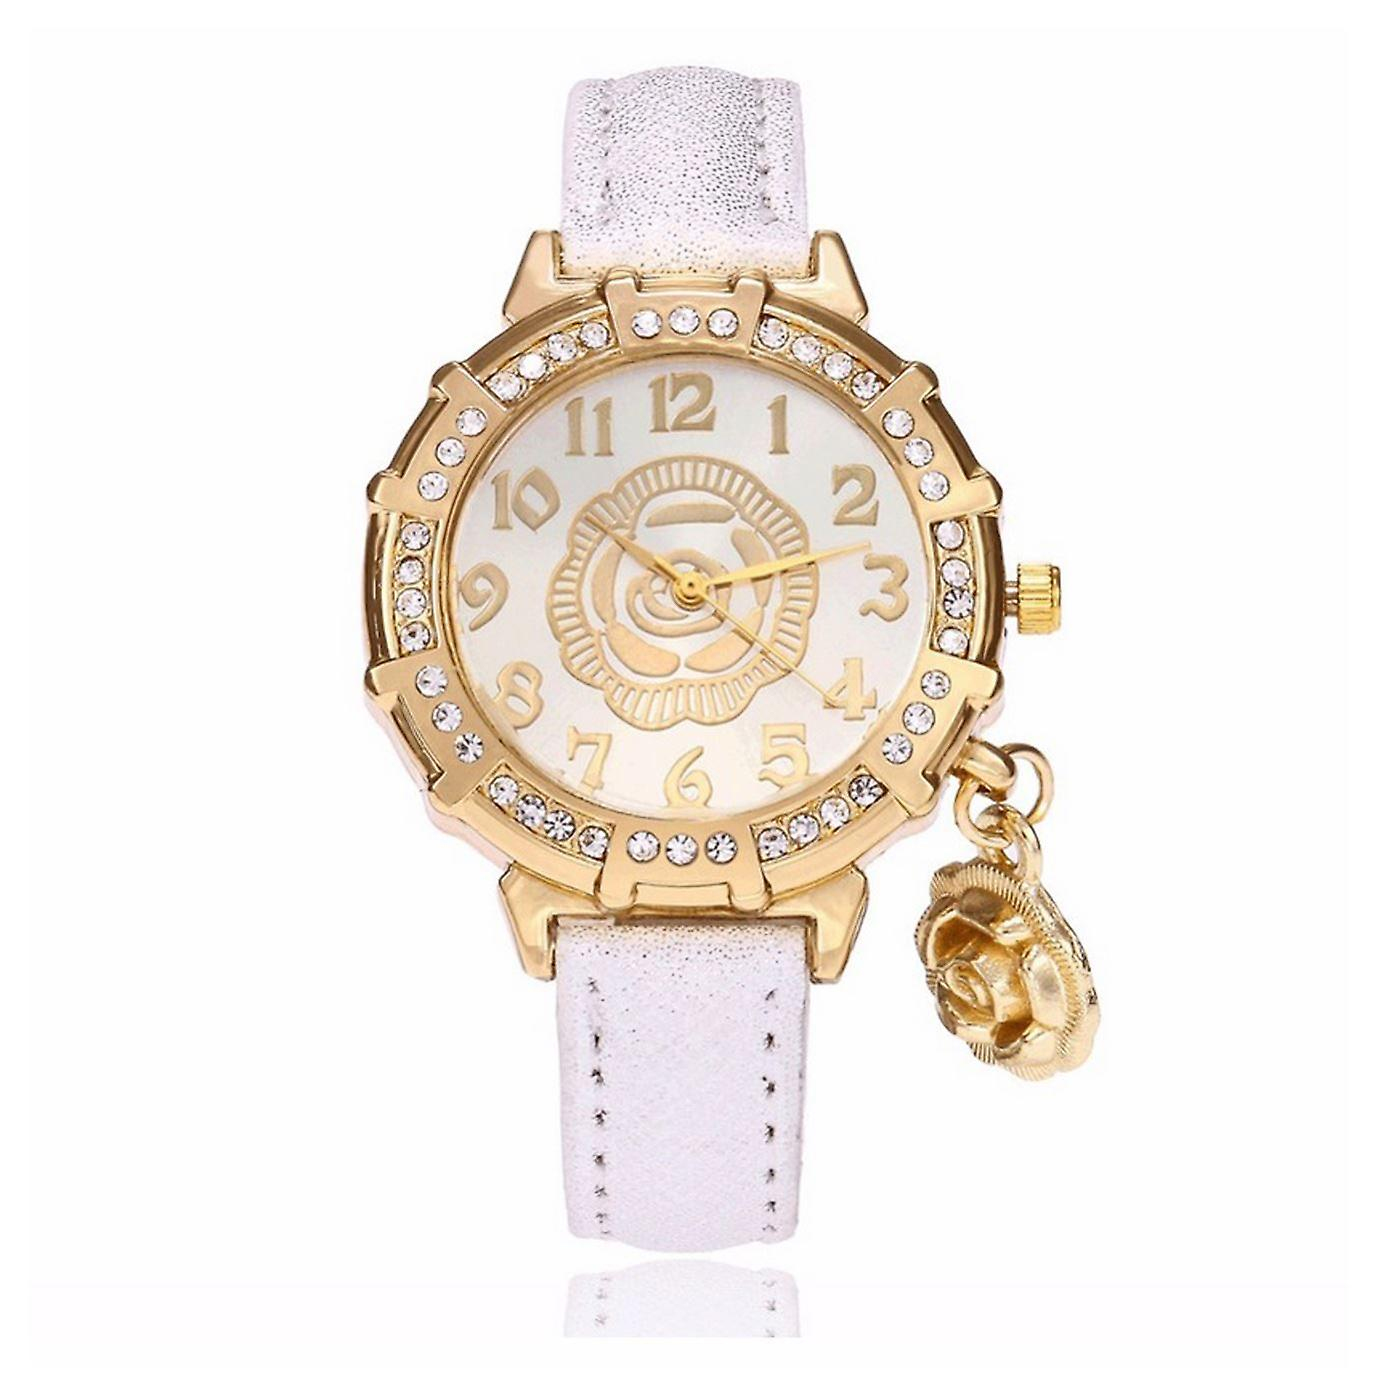 Classy Yellow Gold Flower Watch Luxury Stones Elegant Time White